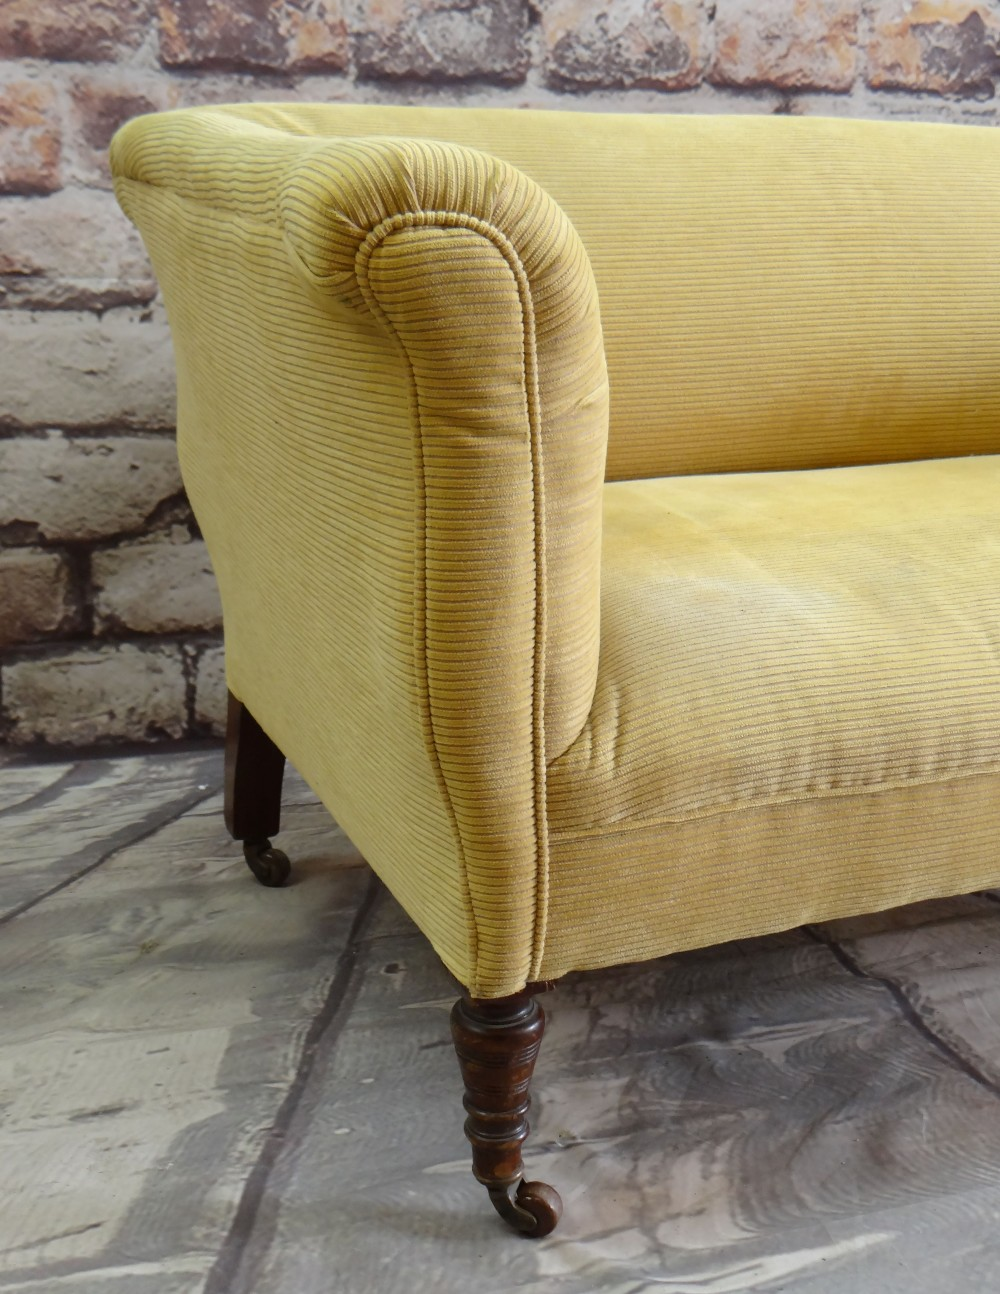 VICTORIAN WALNUT TWO-SEATER SOFA, later yellow ribbed upholstery, turned legs, castors 142 x 70cms - Image 3 of 3